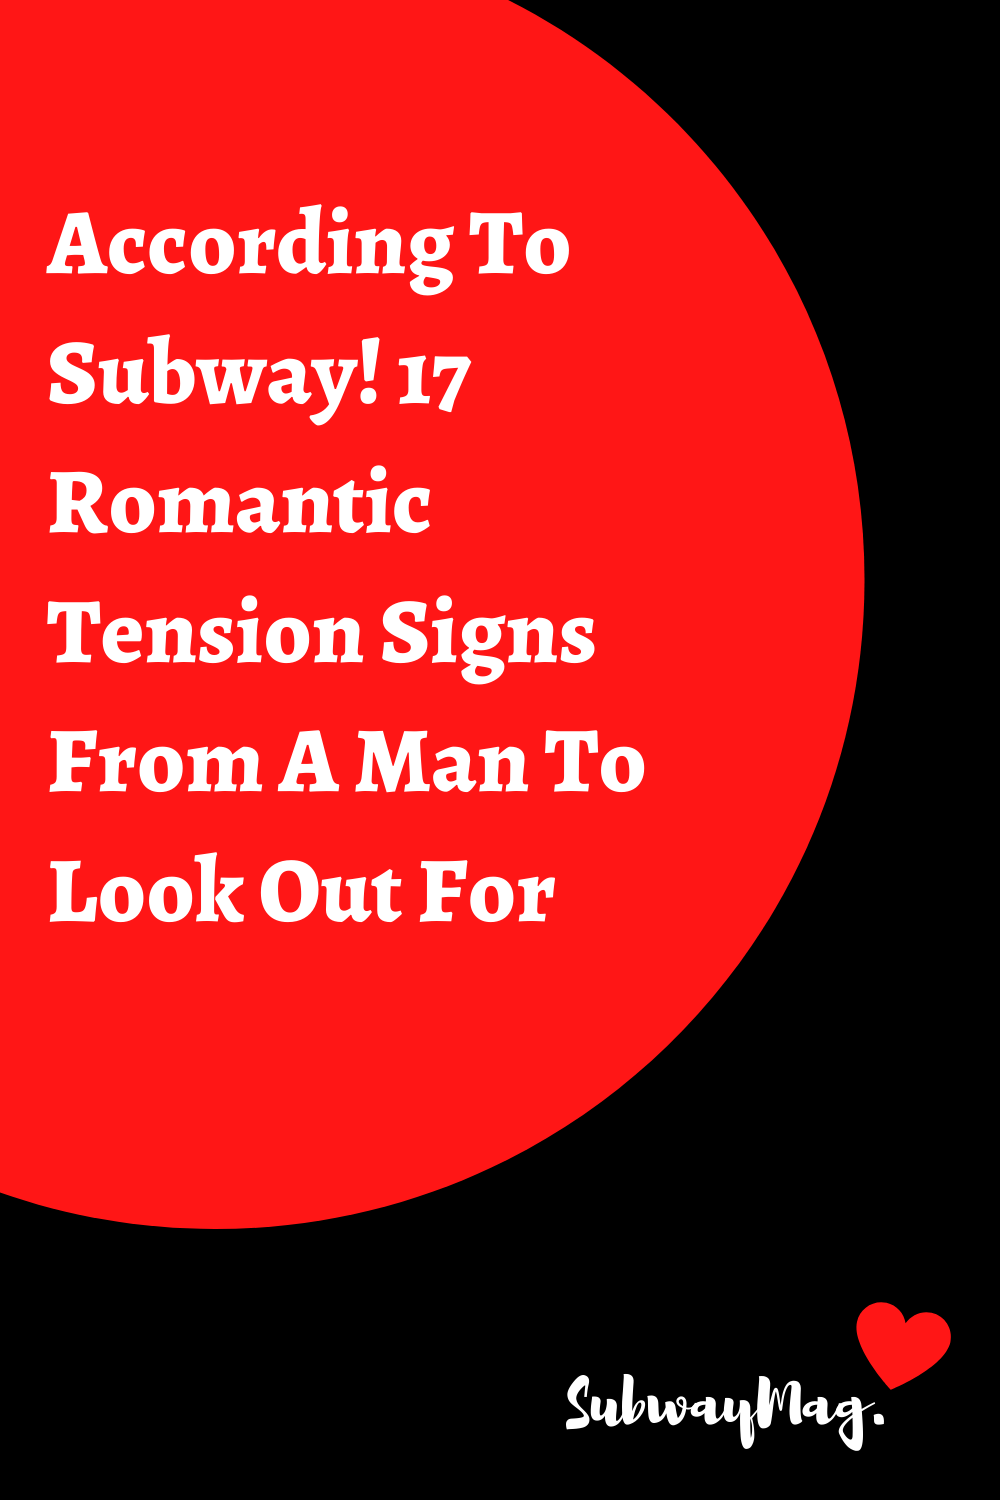 Signs of romantic tension